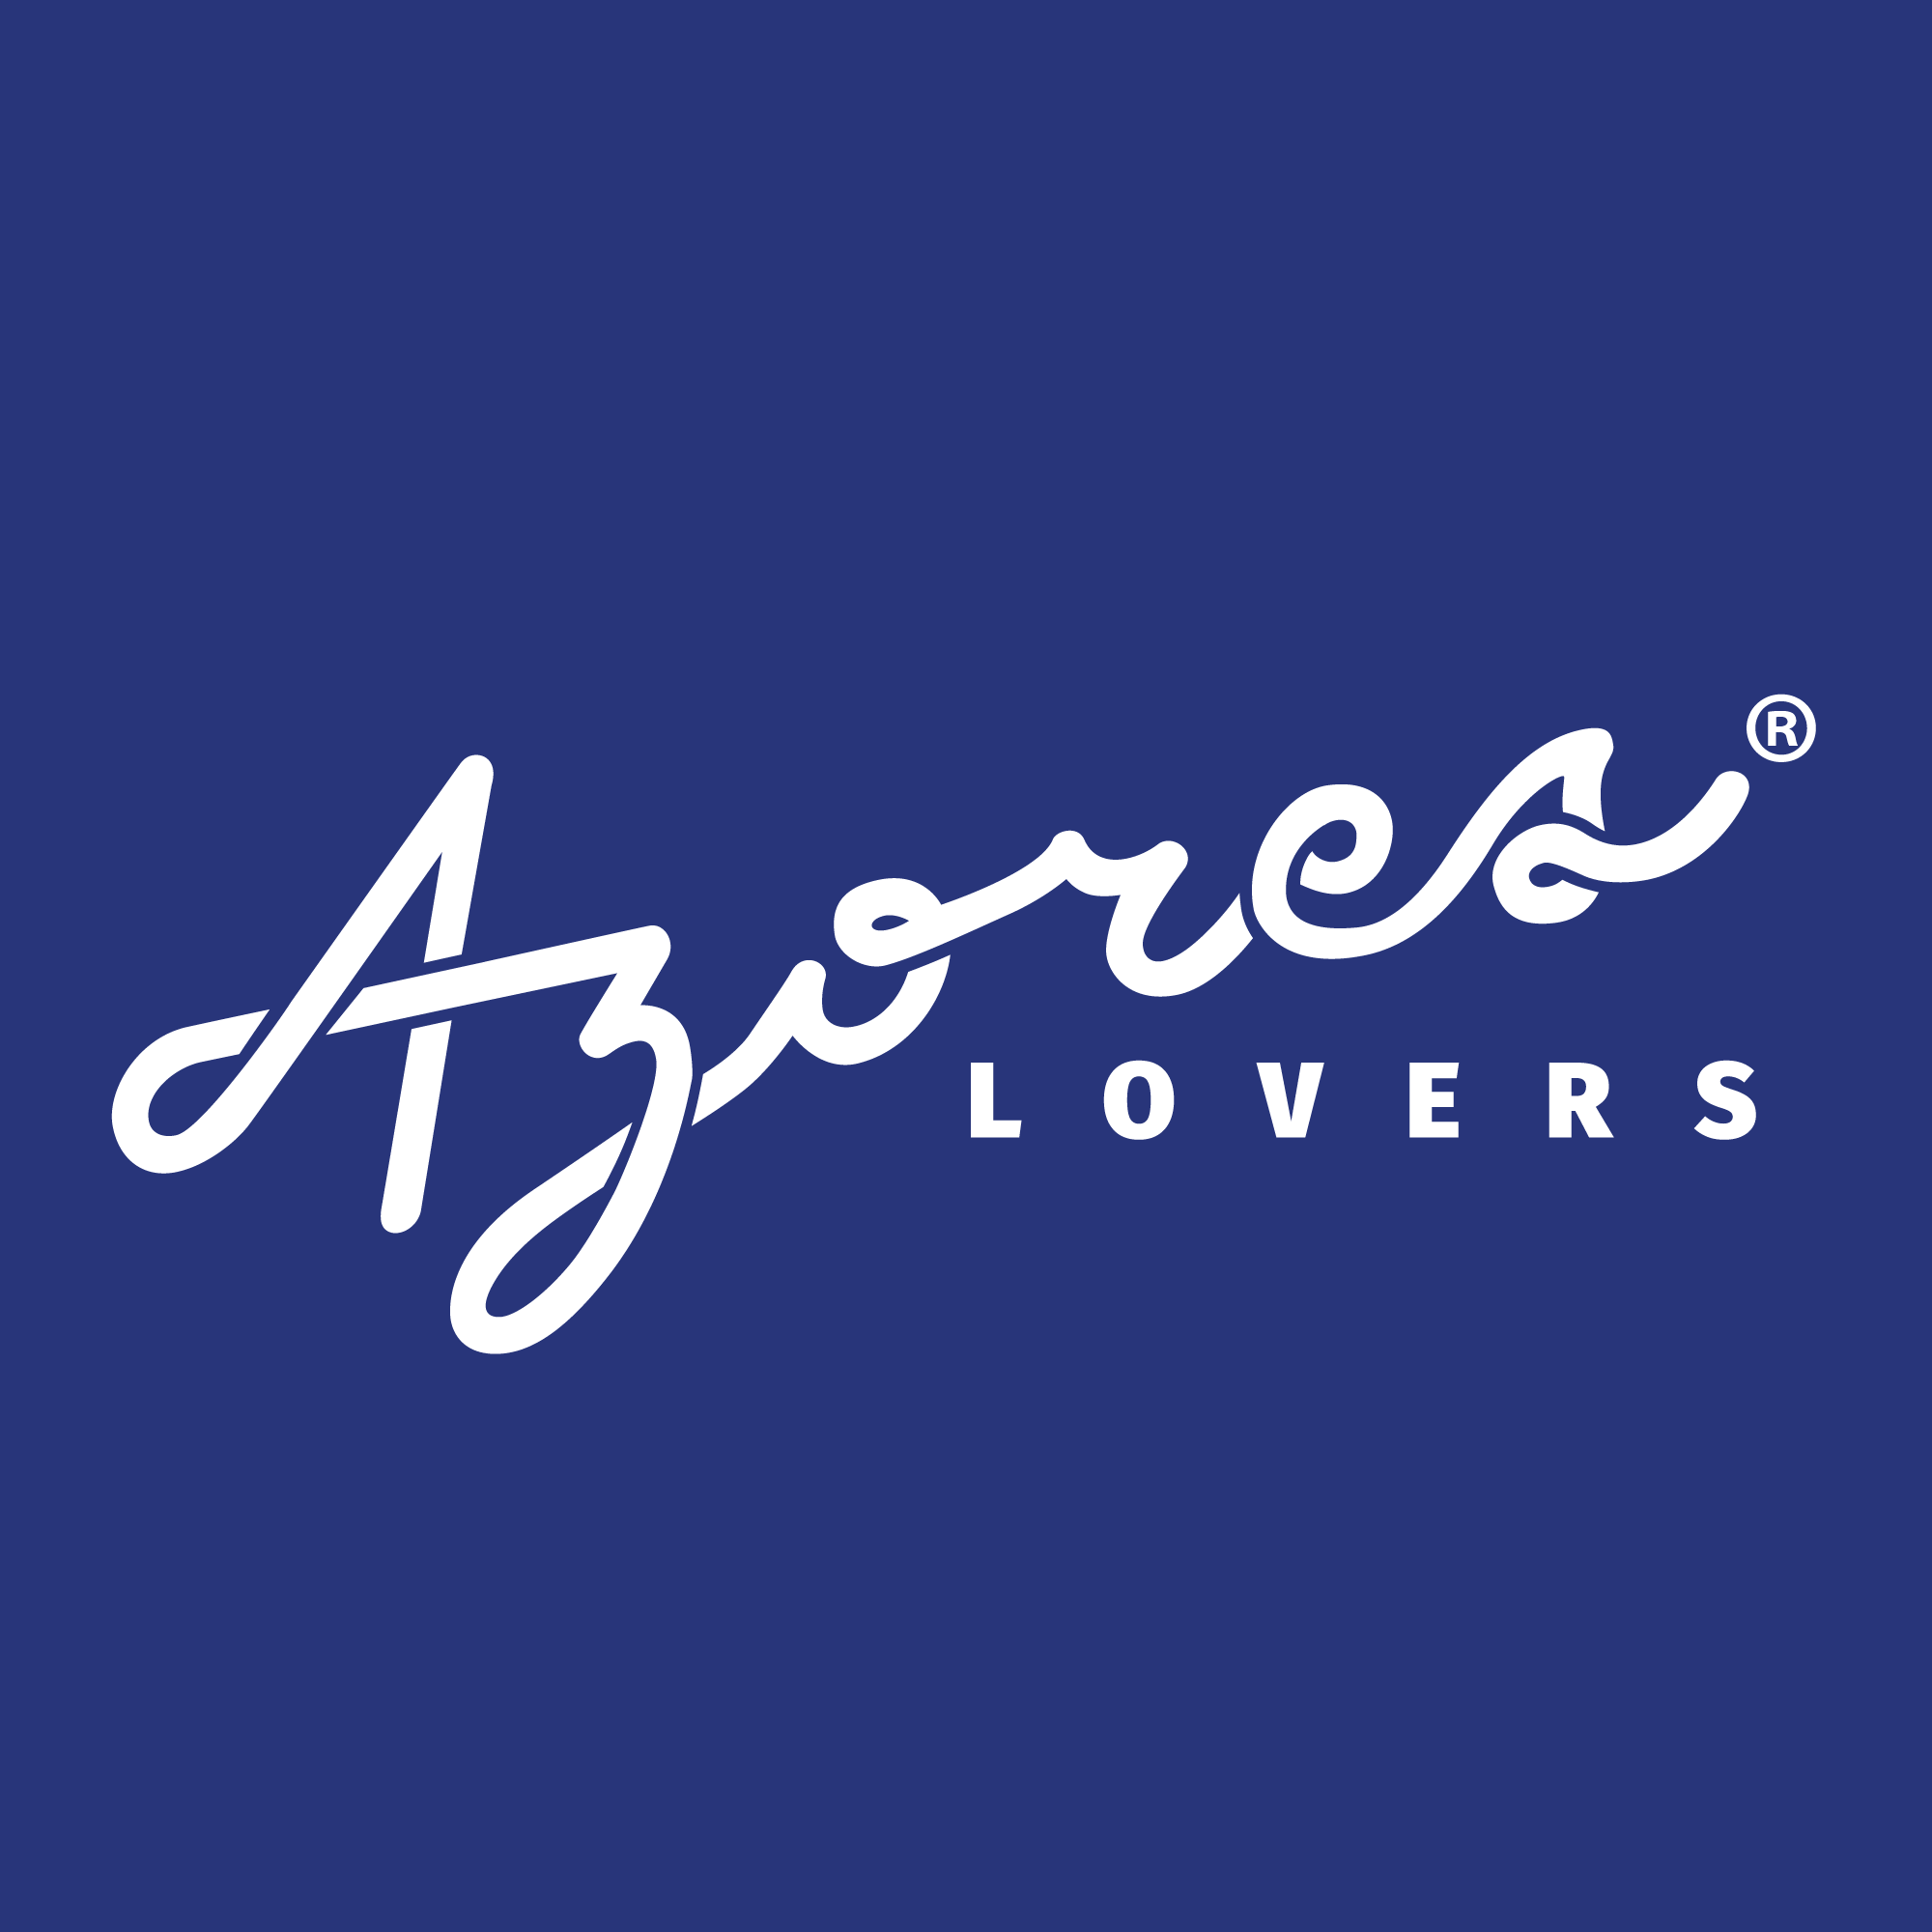 Azores Lovers